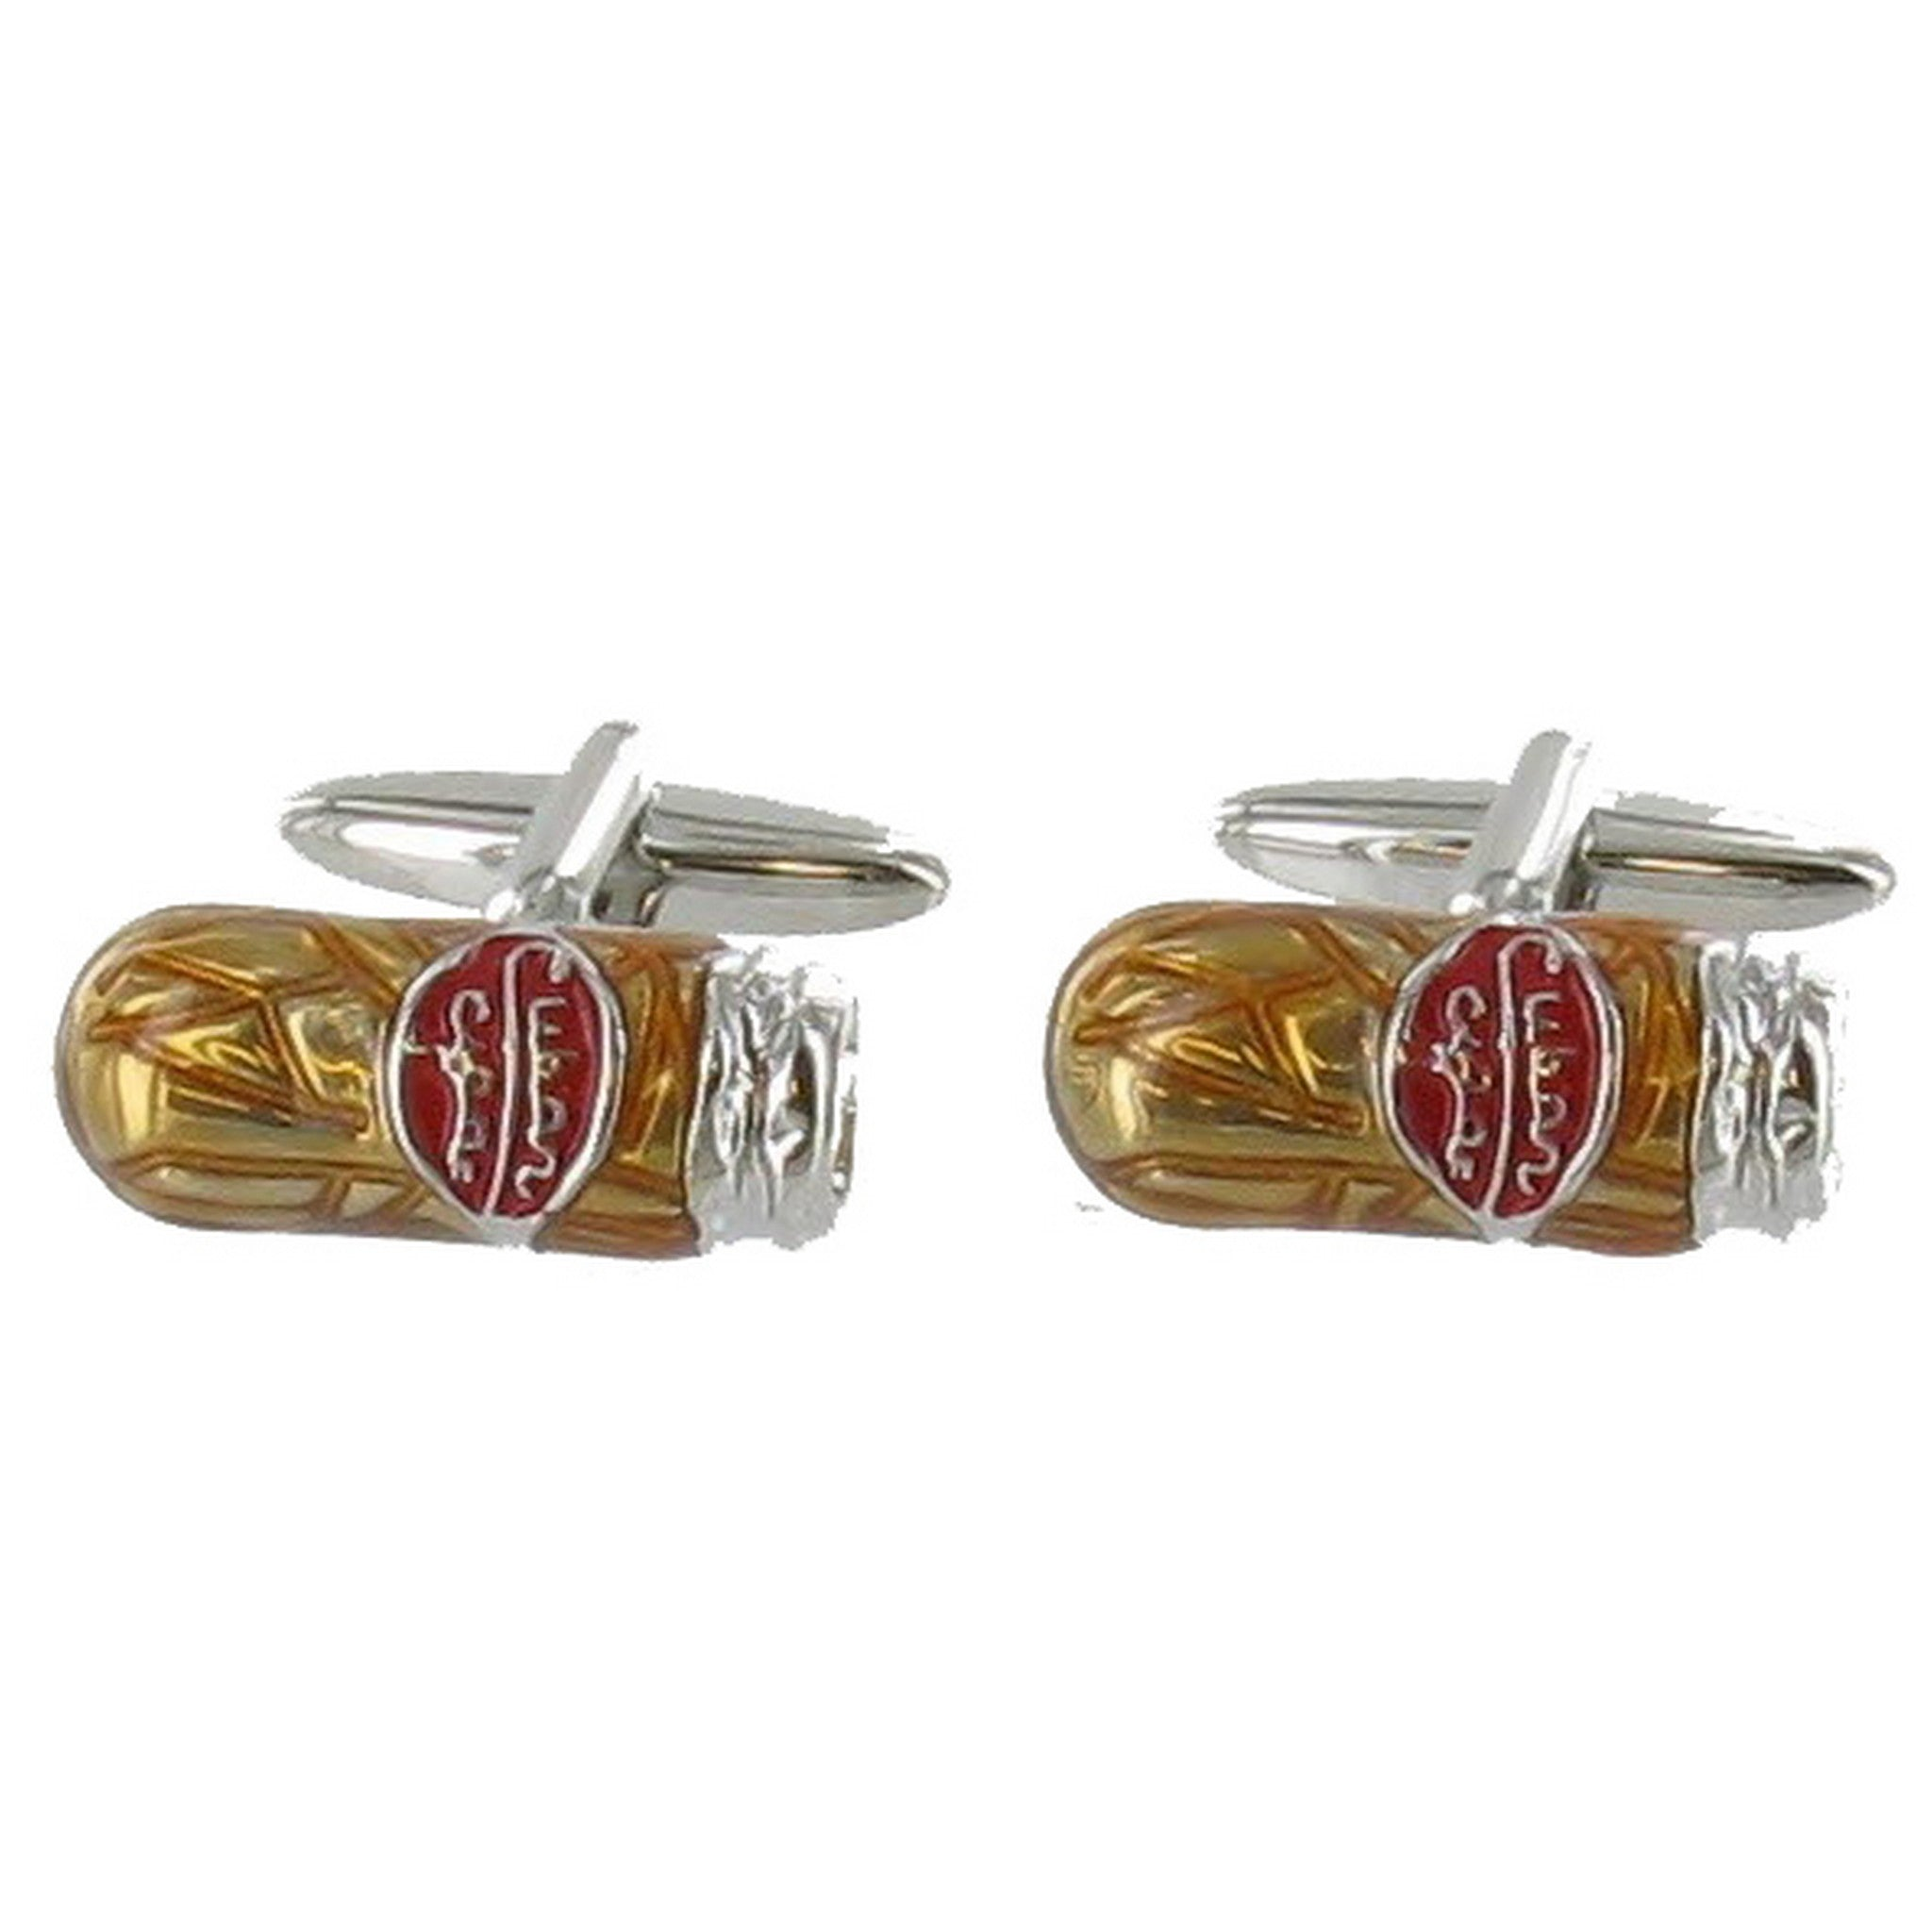 Cigar Cuff Links